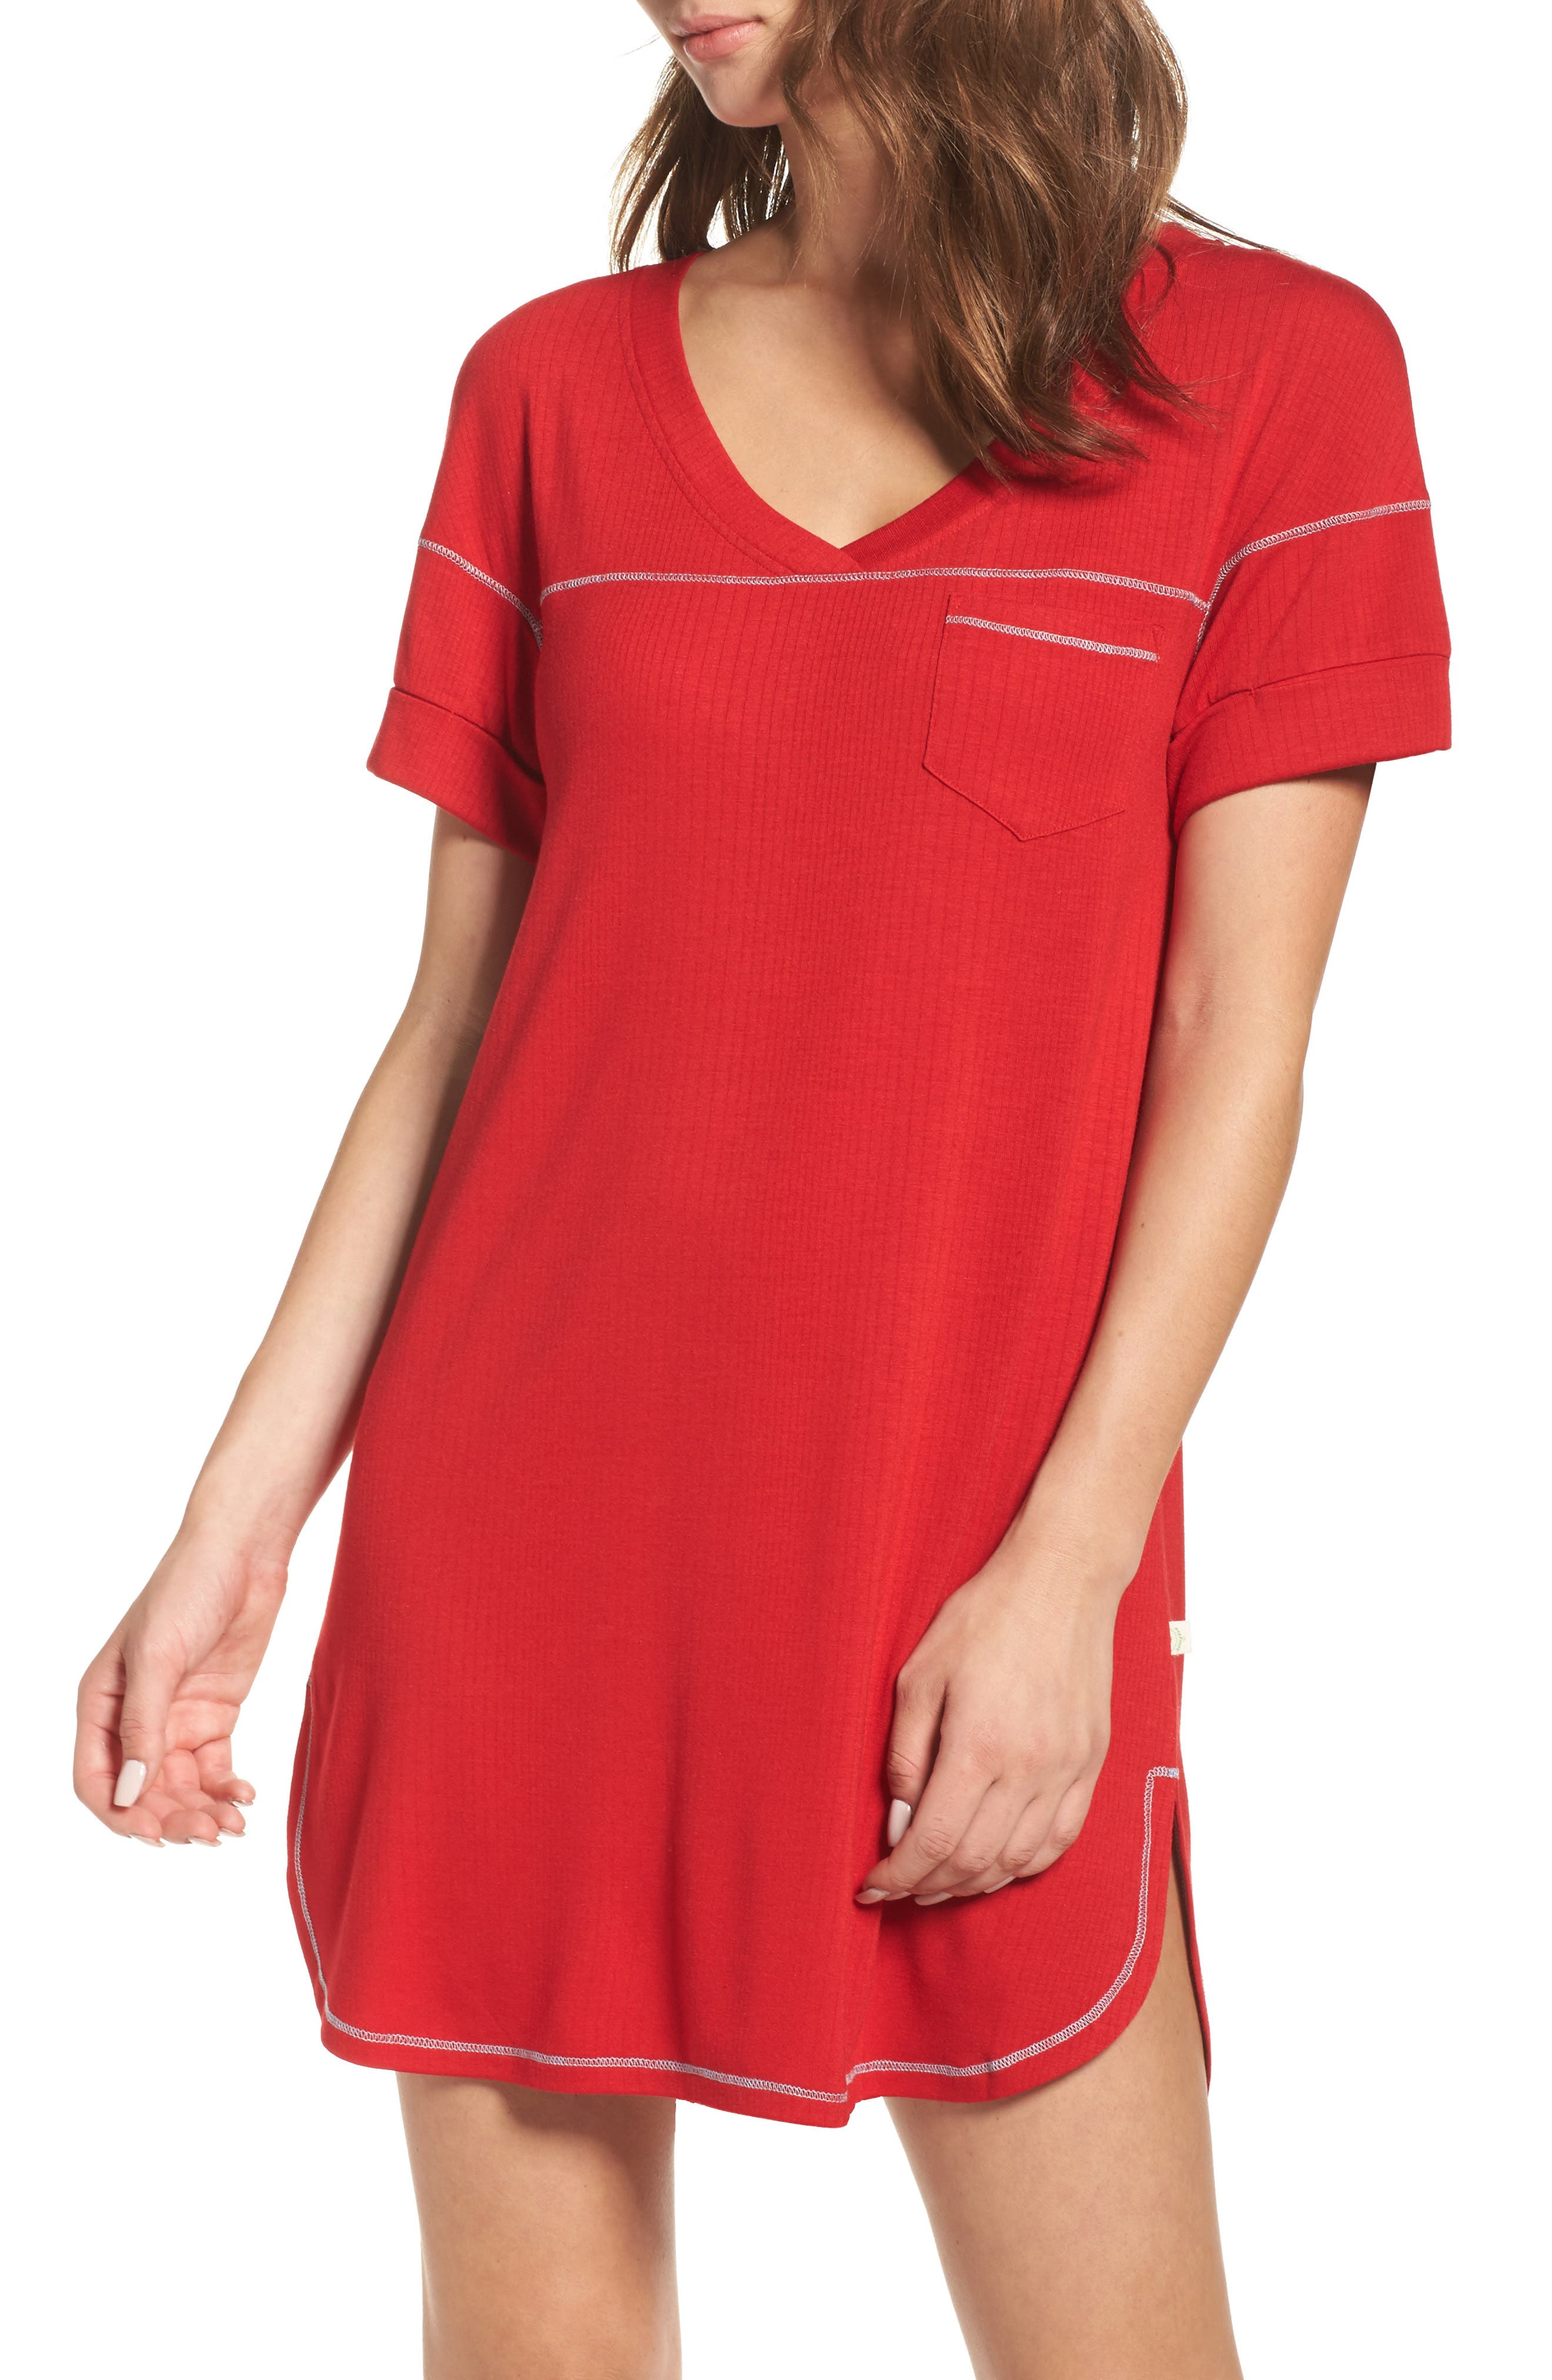 Honeydew Intimates Rib Sleep Shirt (2 for $60)